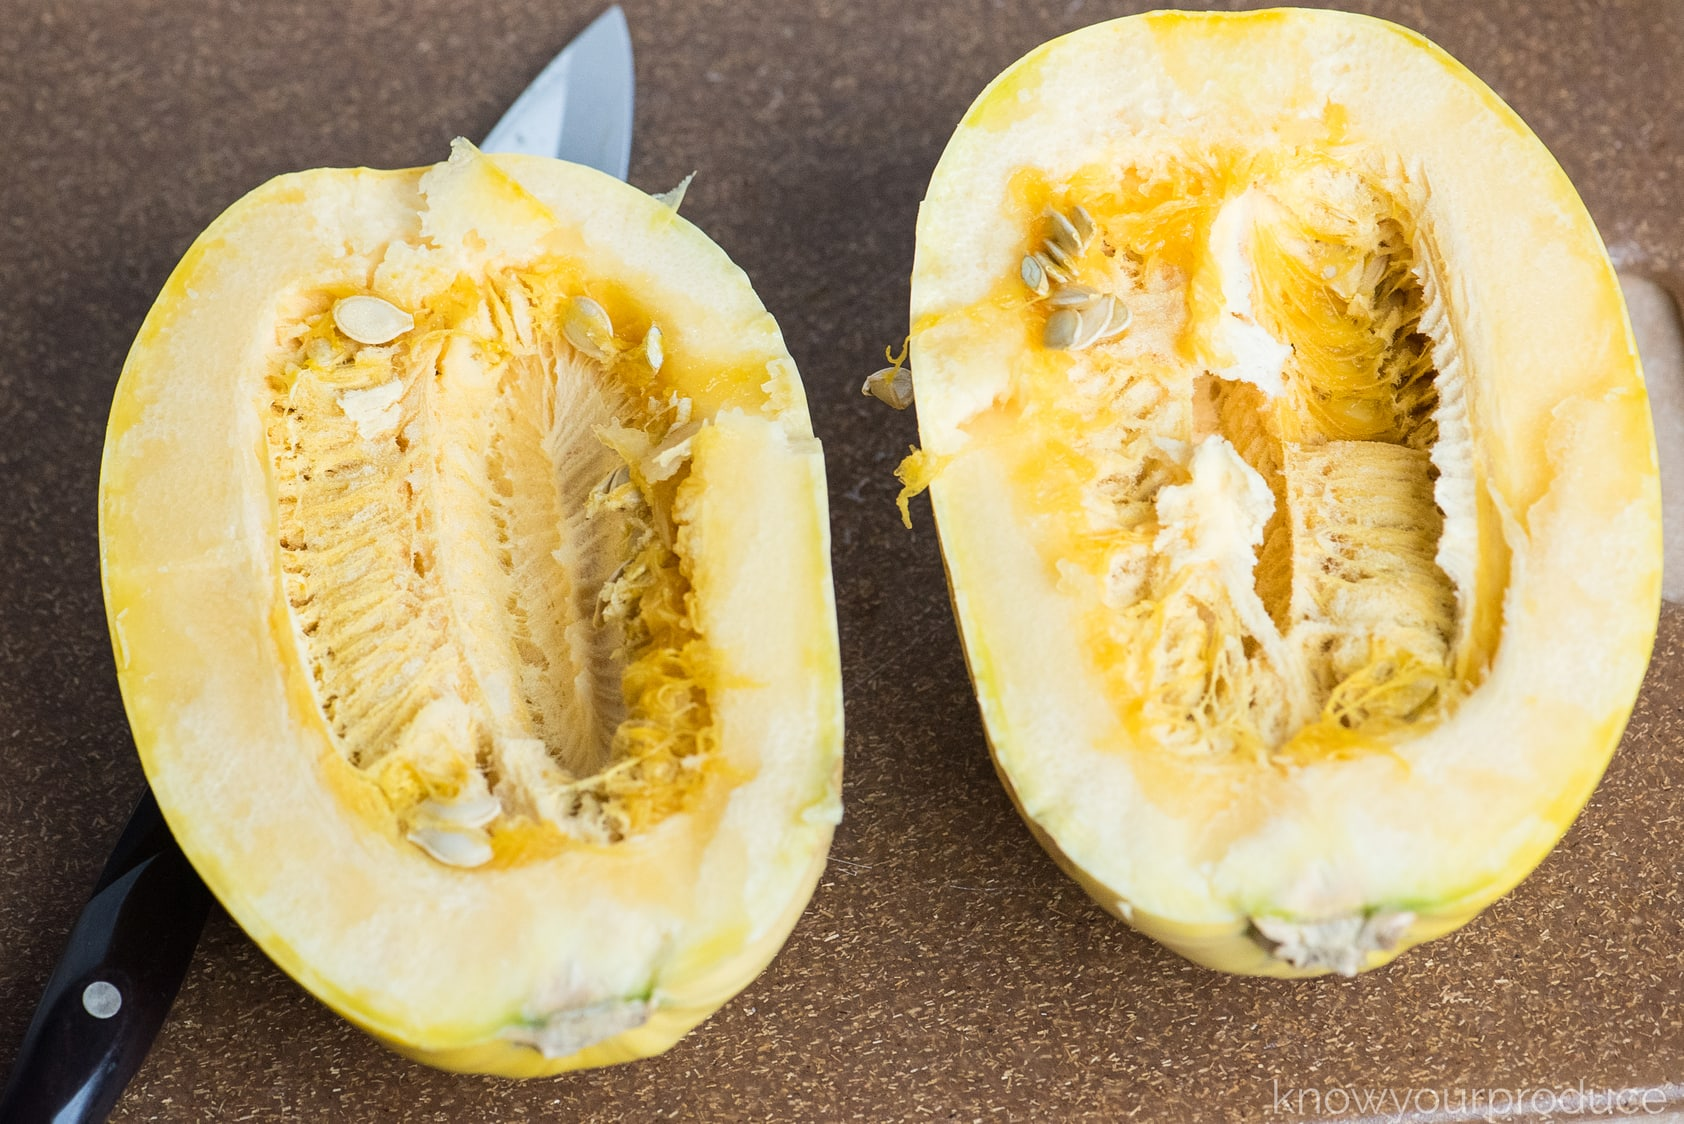 spaghetti squash cut in half on cutting board with seeds in